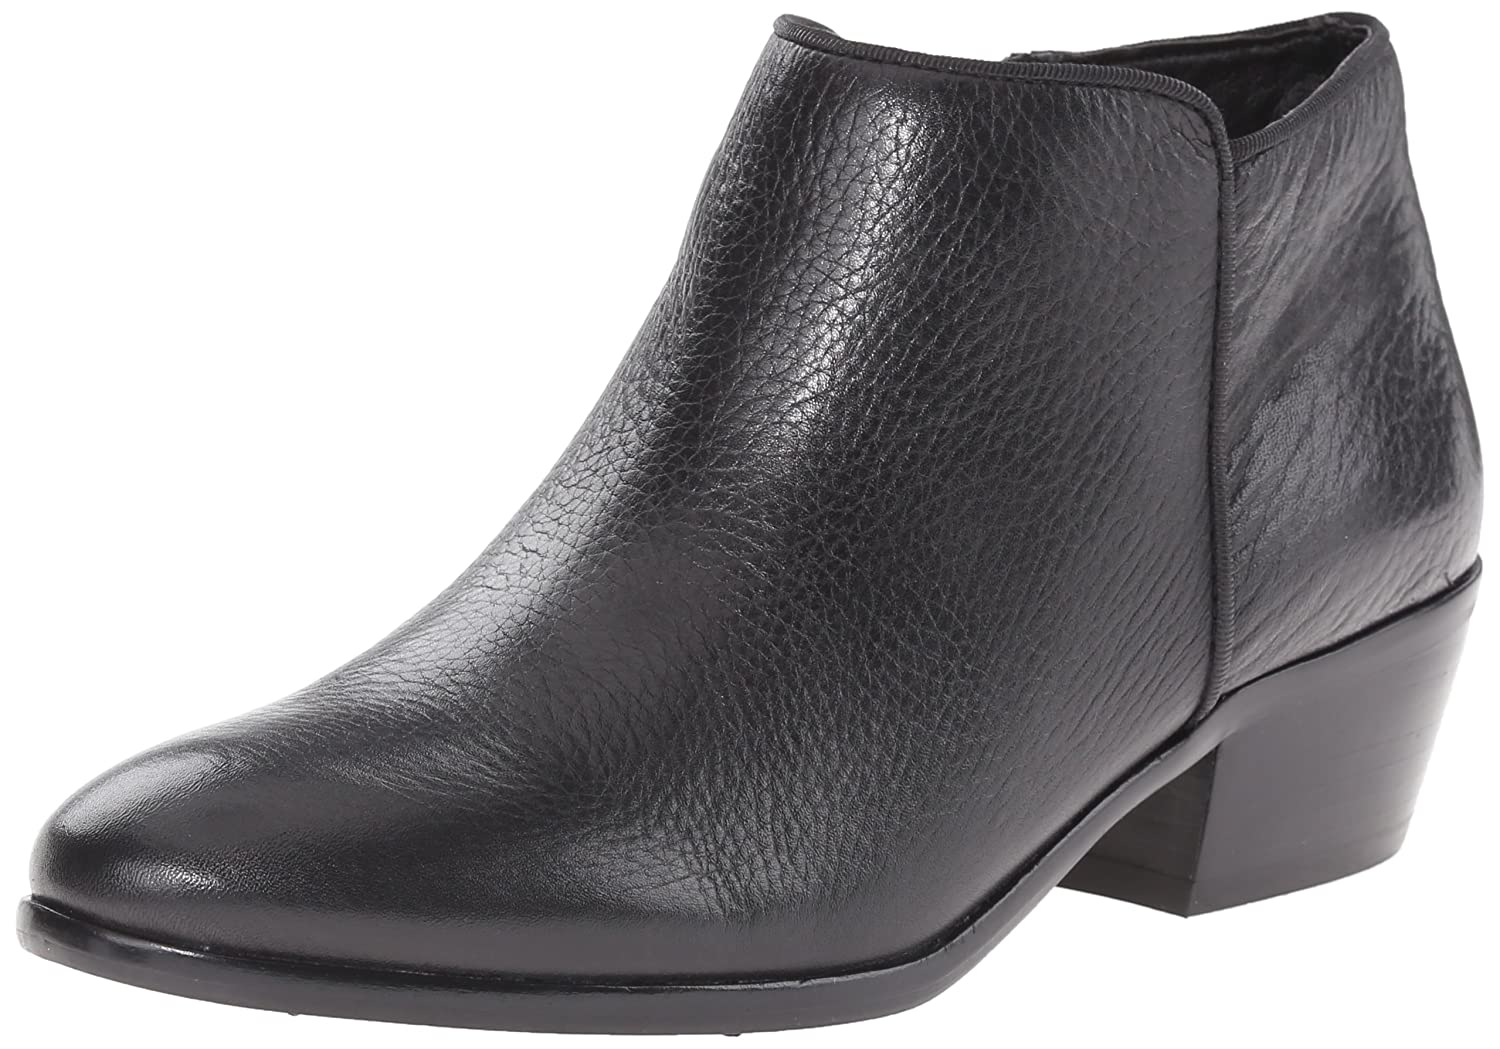 Black Leather Sam Edelman Women's Petty Boot